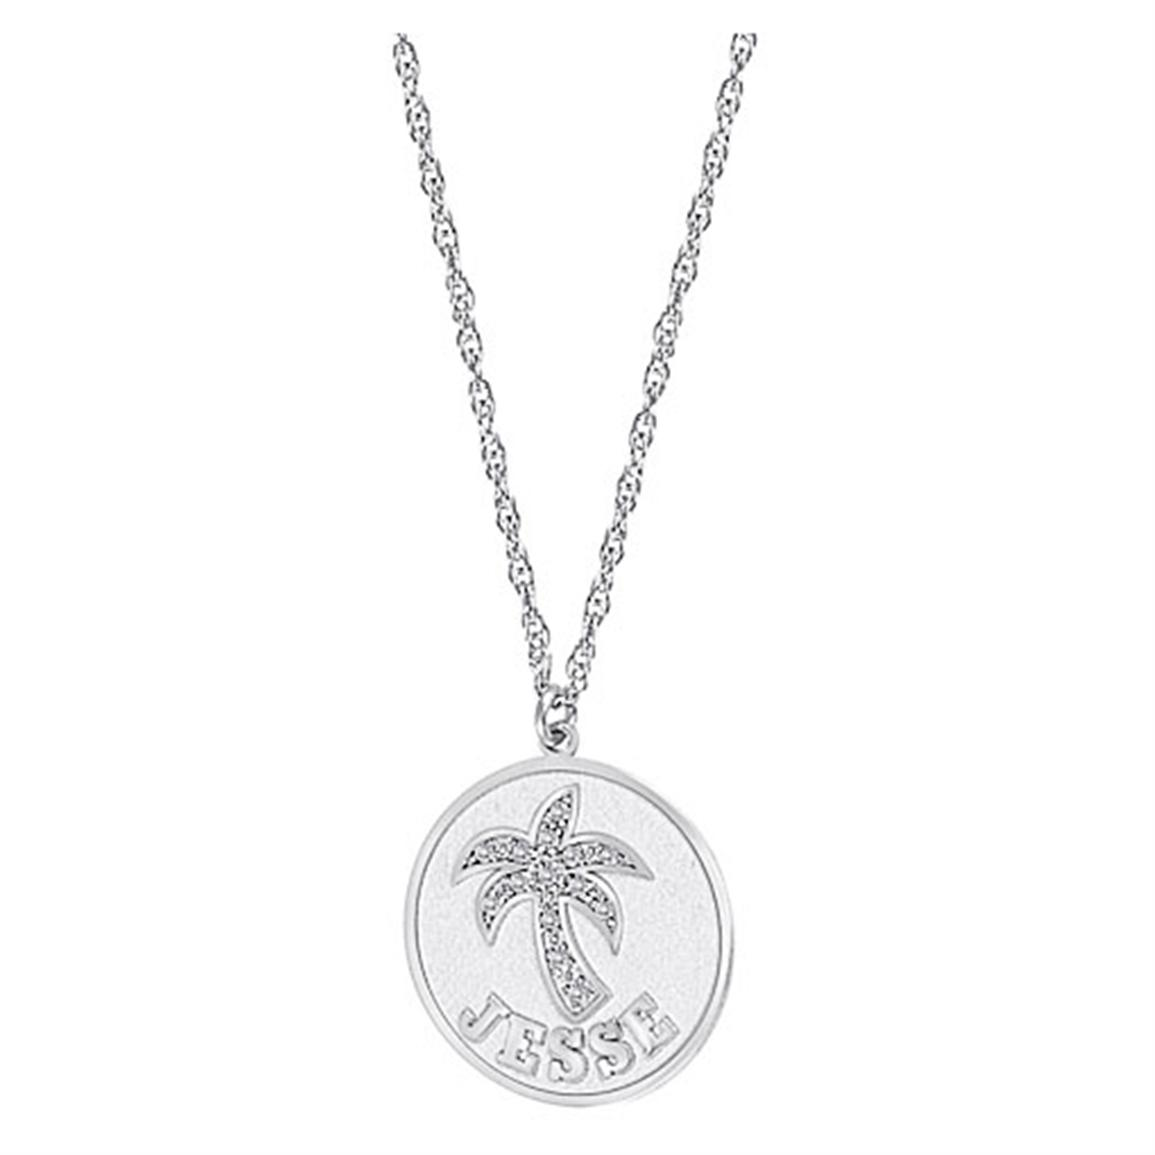 Hampden Sterling Silver / Cubic Zirconia Palm Tree Name Pendant, Spring Ring Clasp